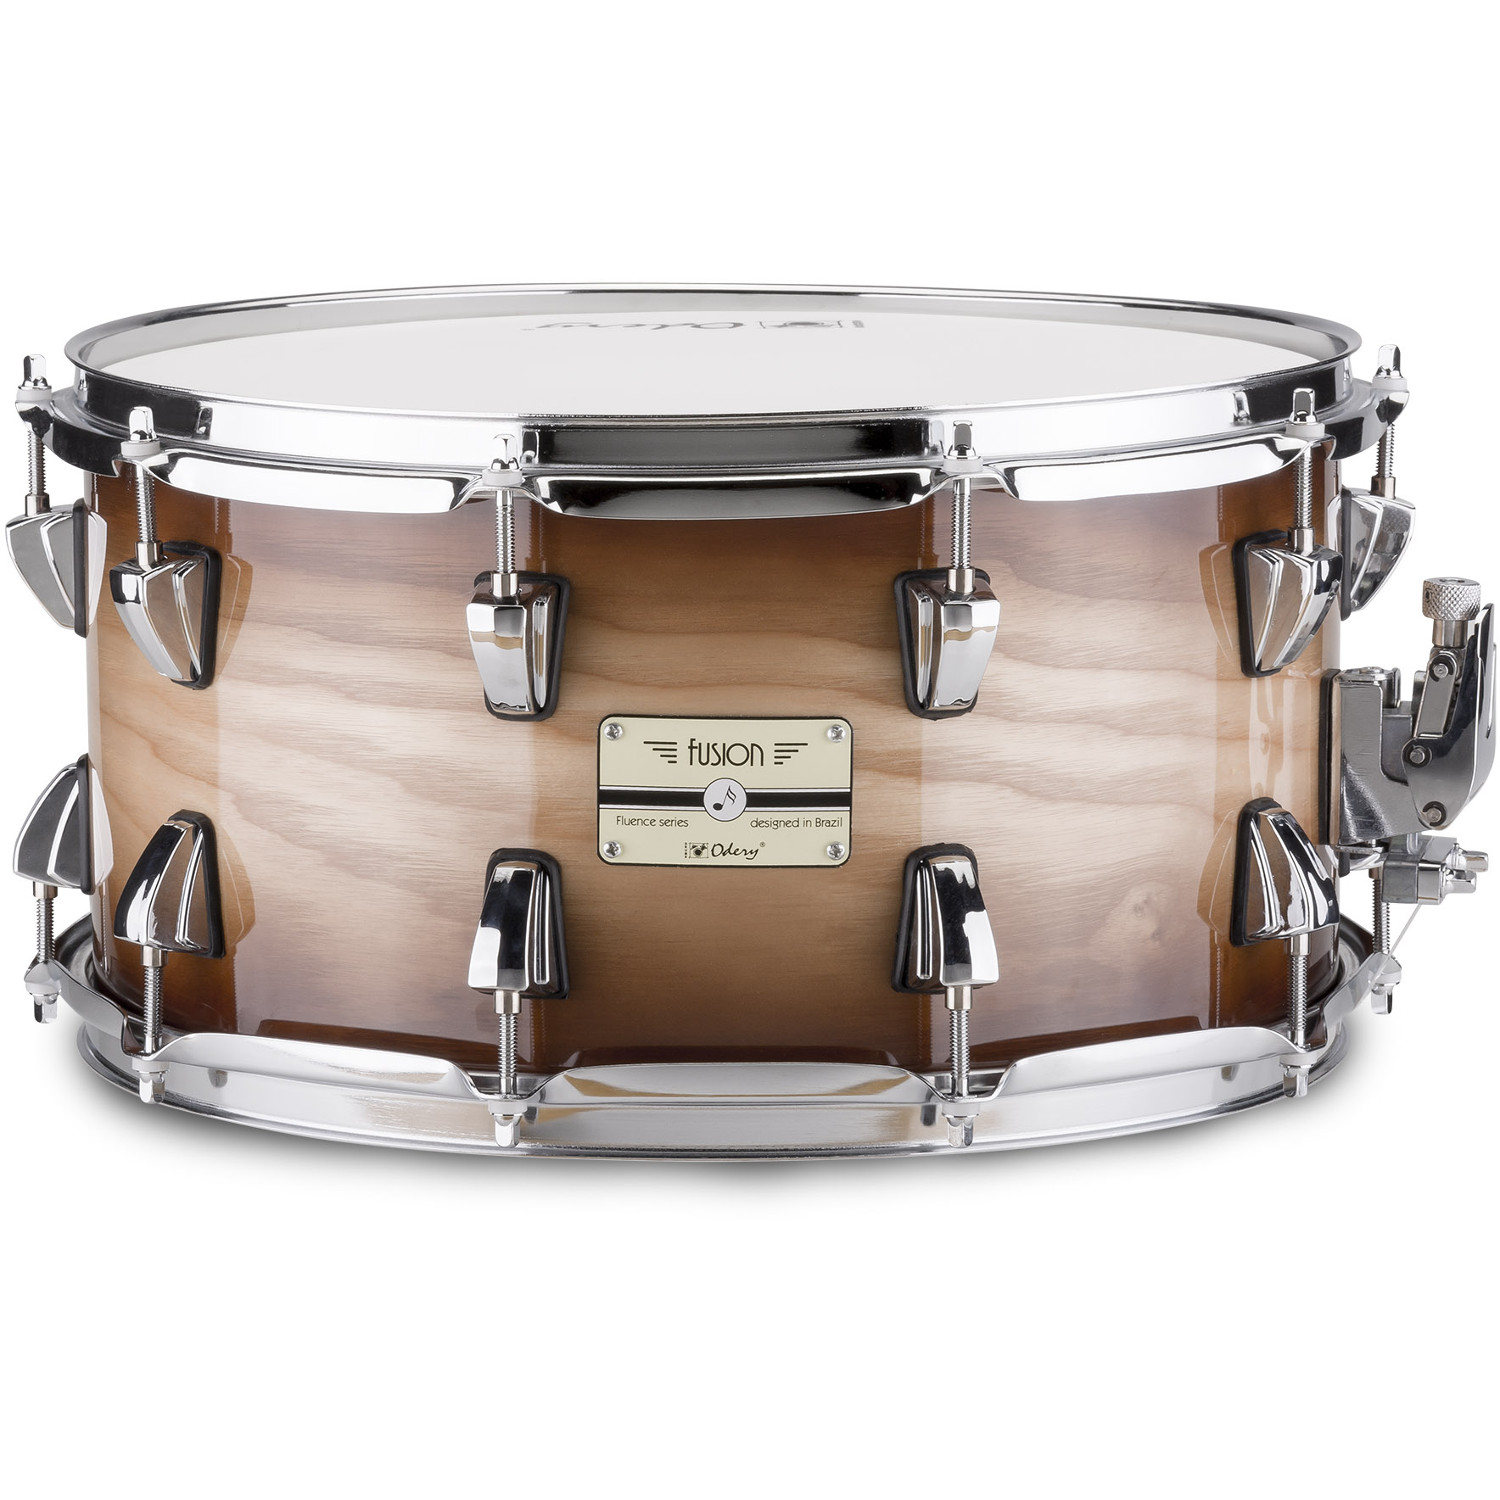 Odery Fluence 14 x 8 inch snare drum, Magma Vintage